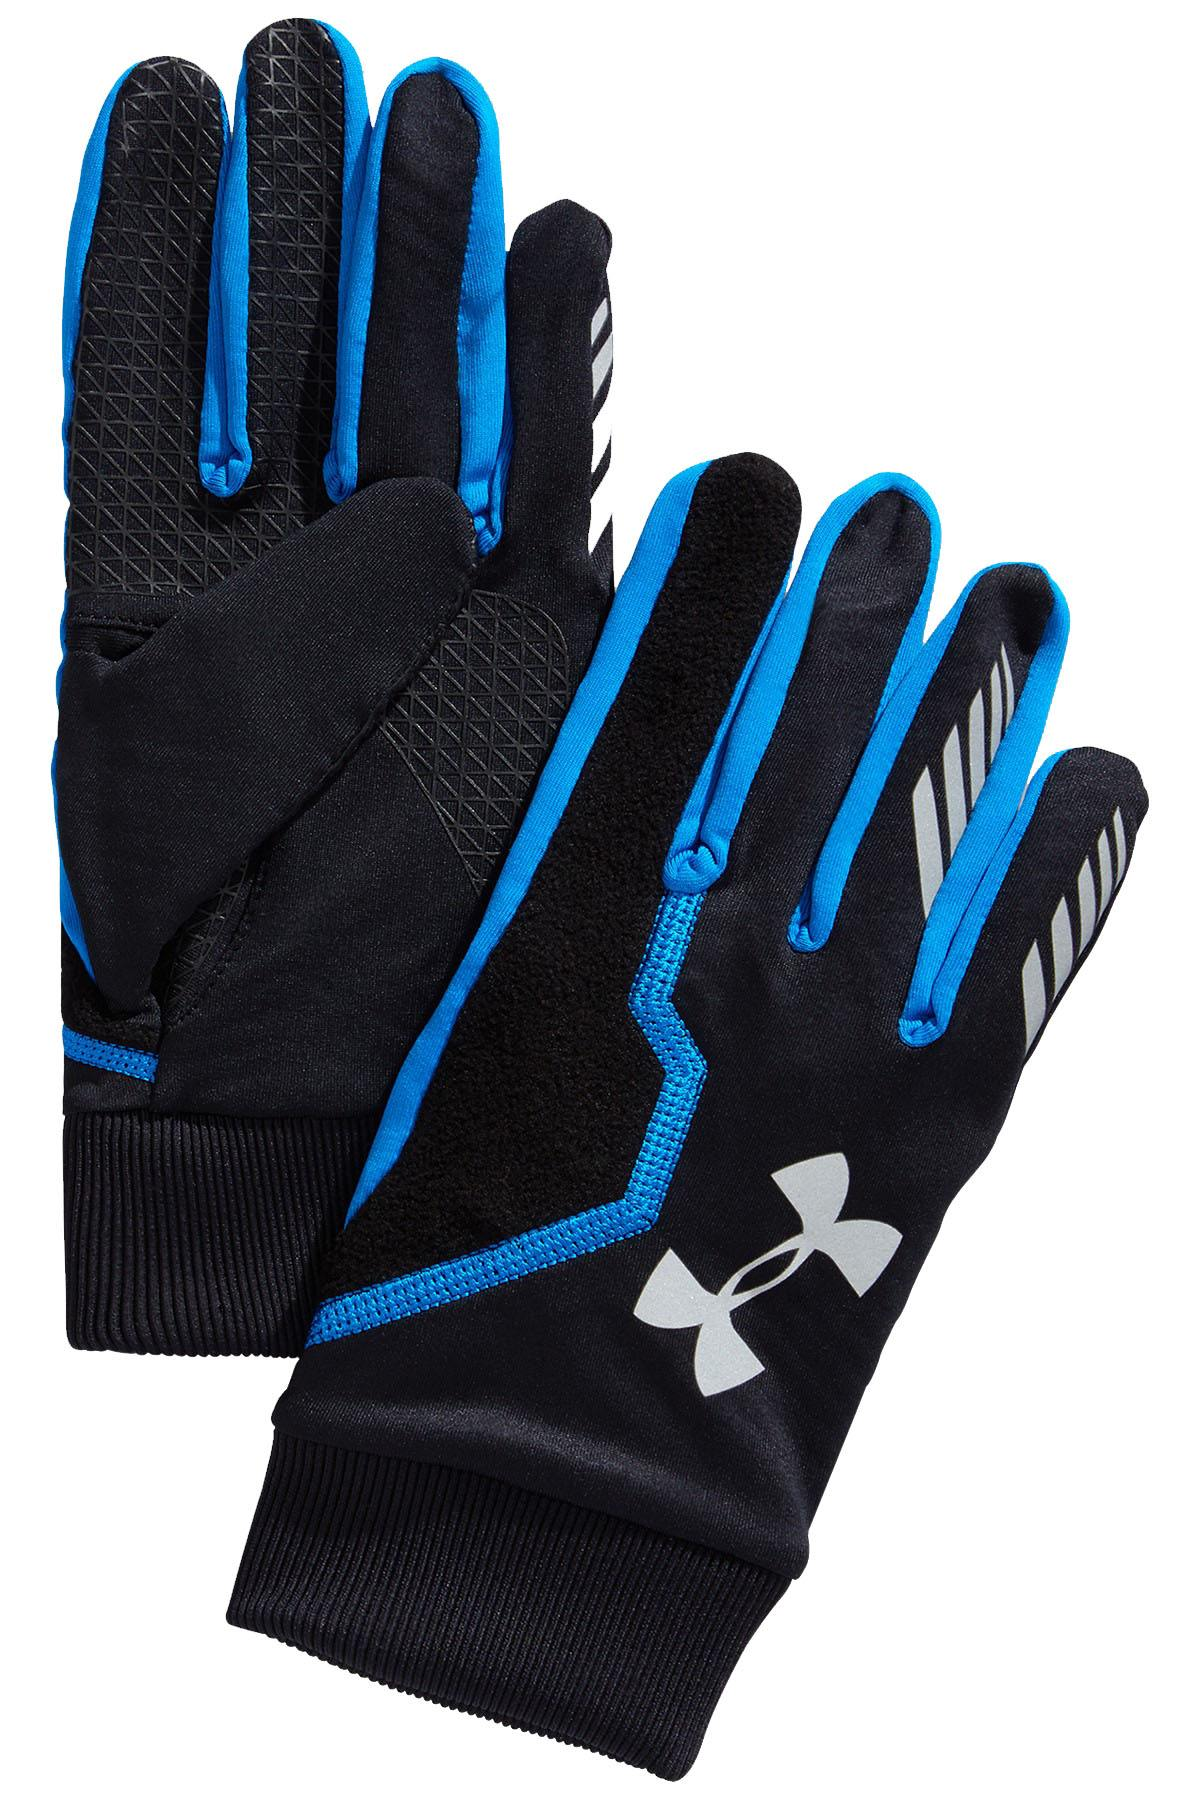 Under Armour Blue/Black ENGAGE ColdGear Infrared Touchscreen Running Gloves